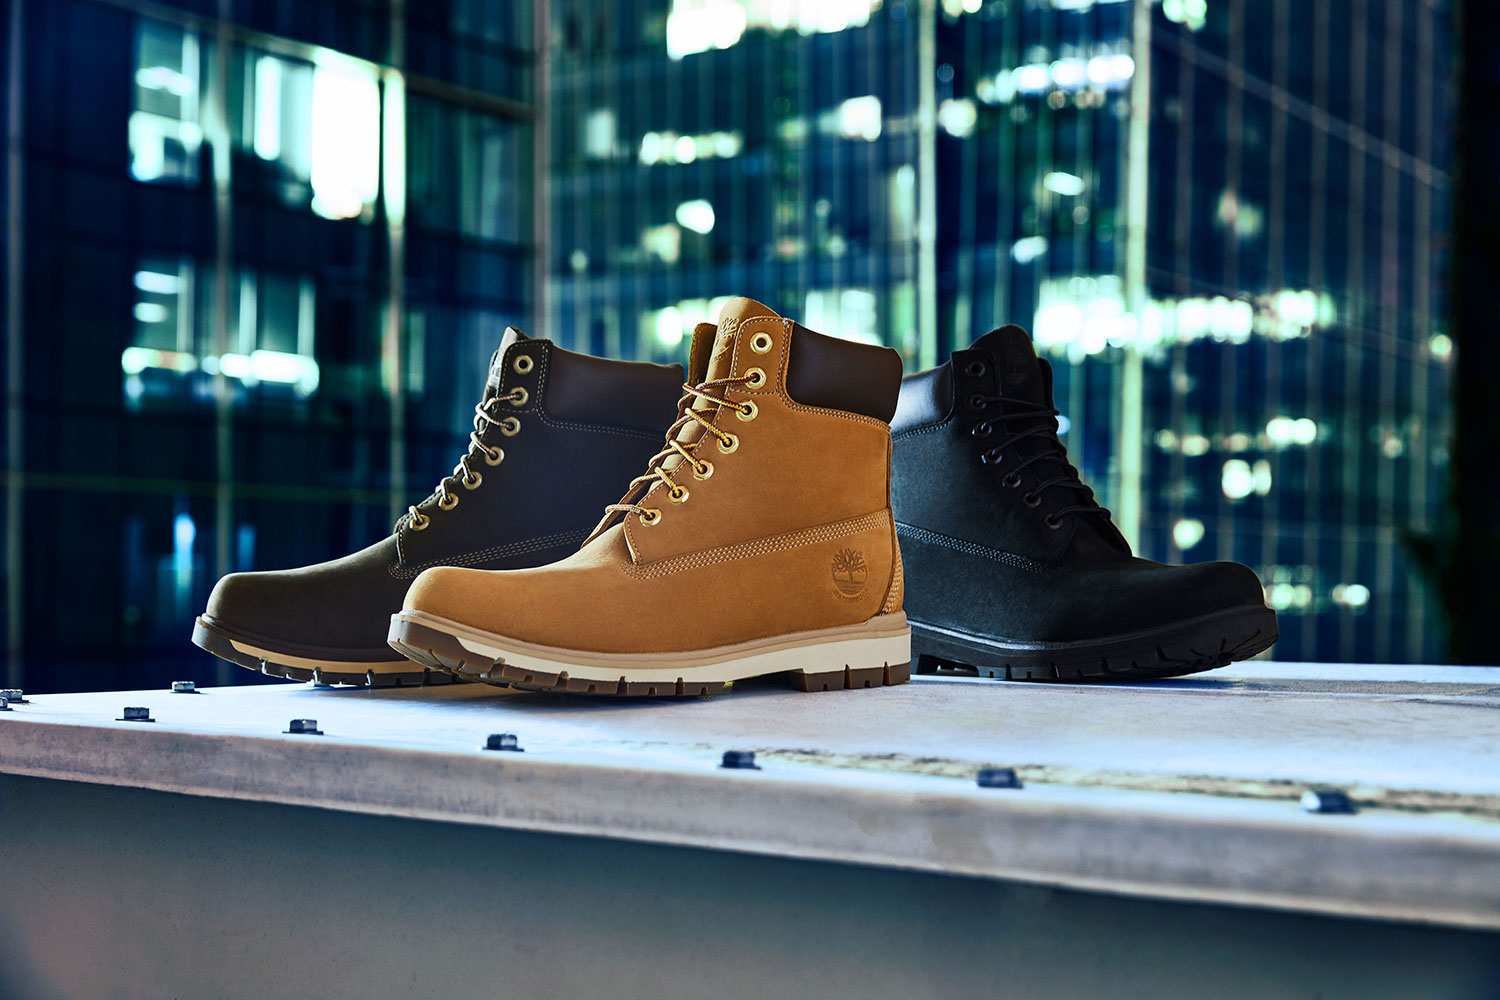 The Ultimate Winter Gears from Timberland